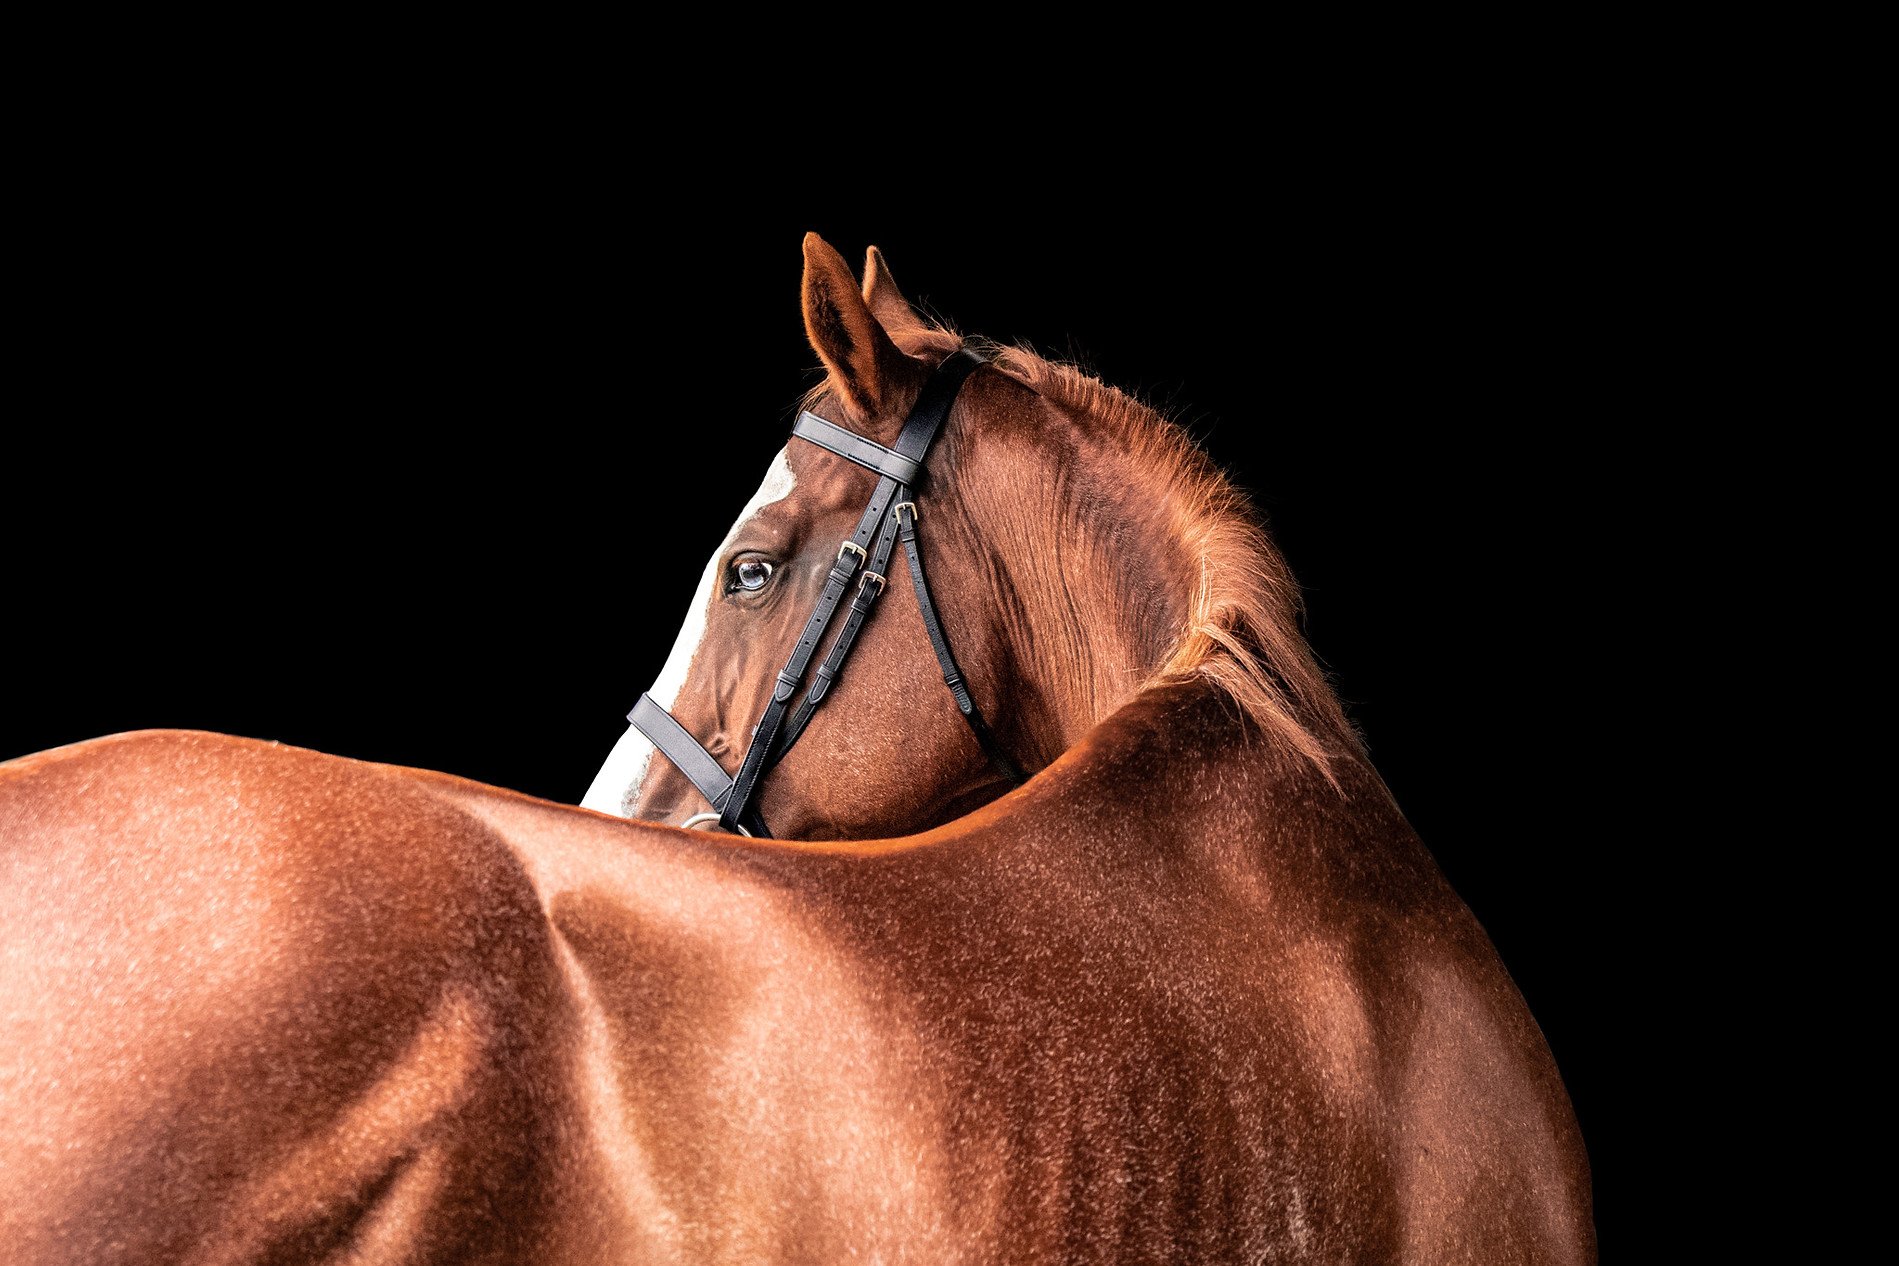 Equine Fine Art Sydney photography